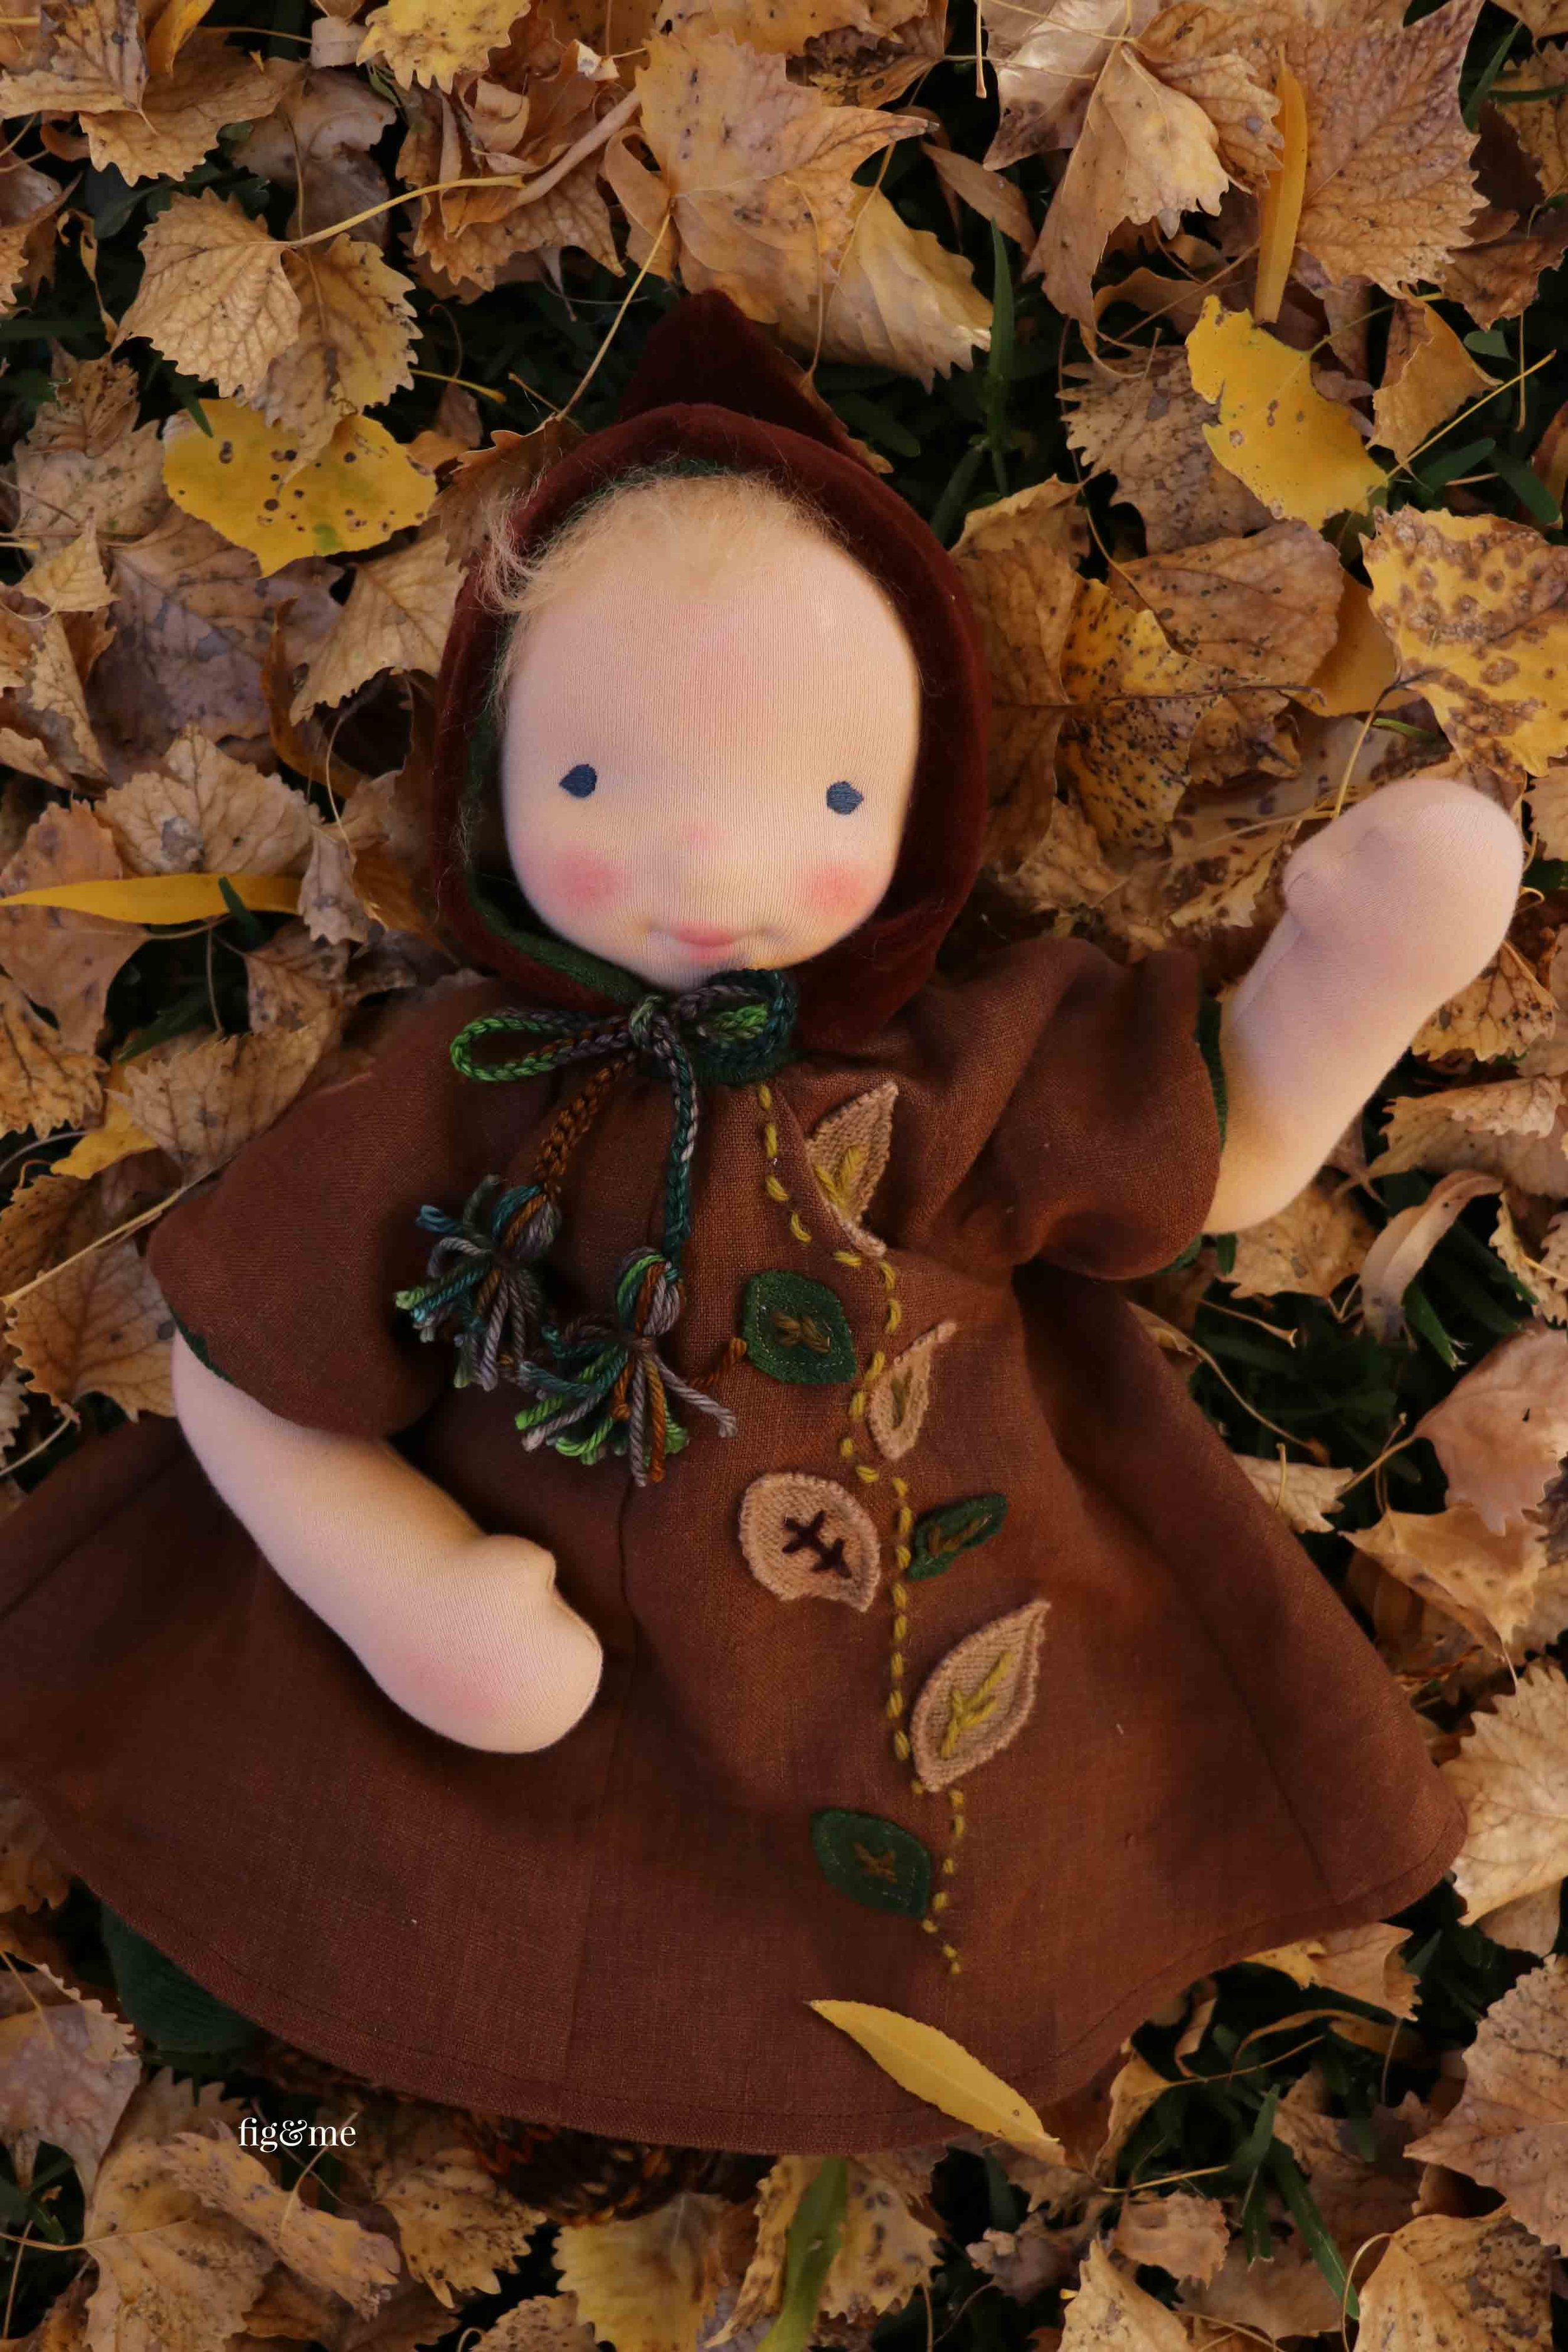 Alefreda on a bed of leaves, by Fig and Me.